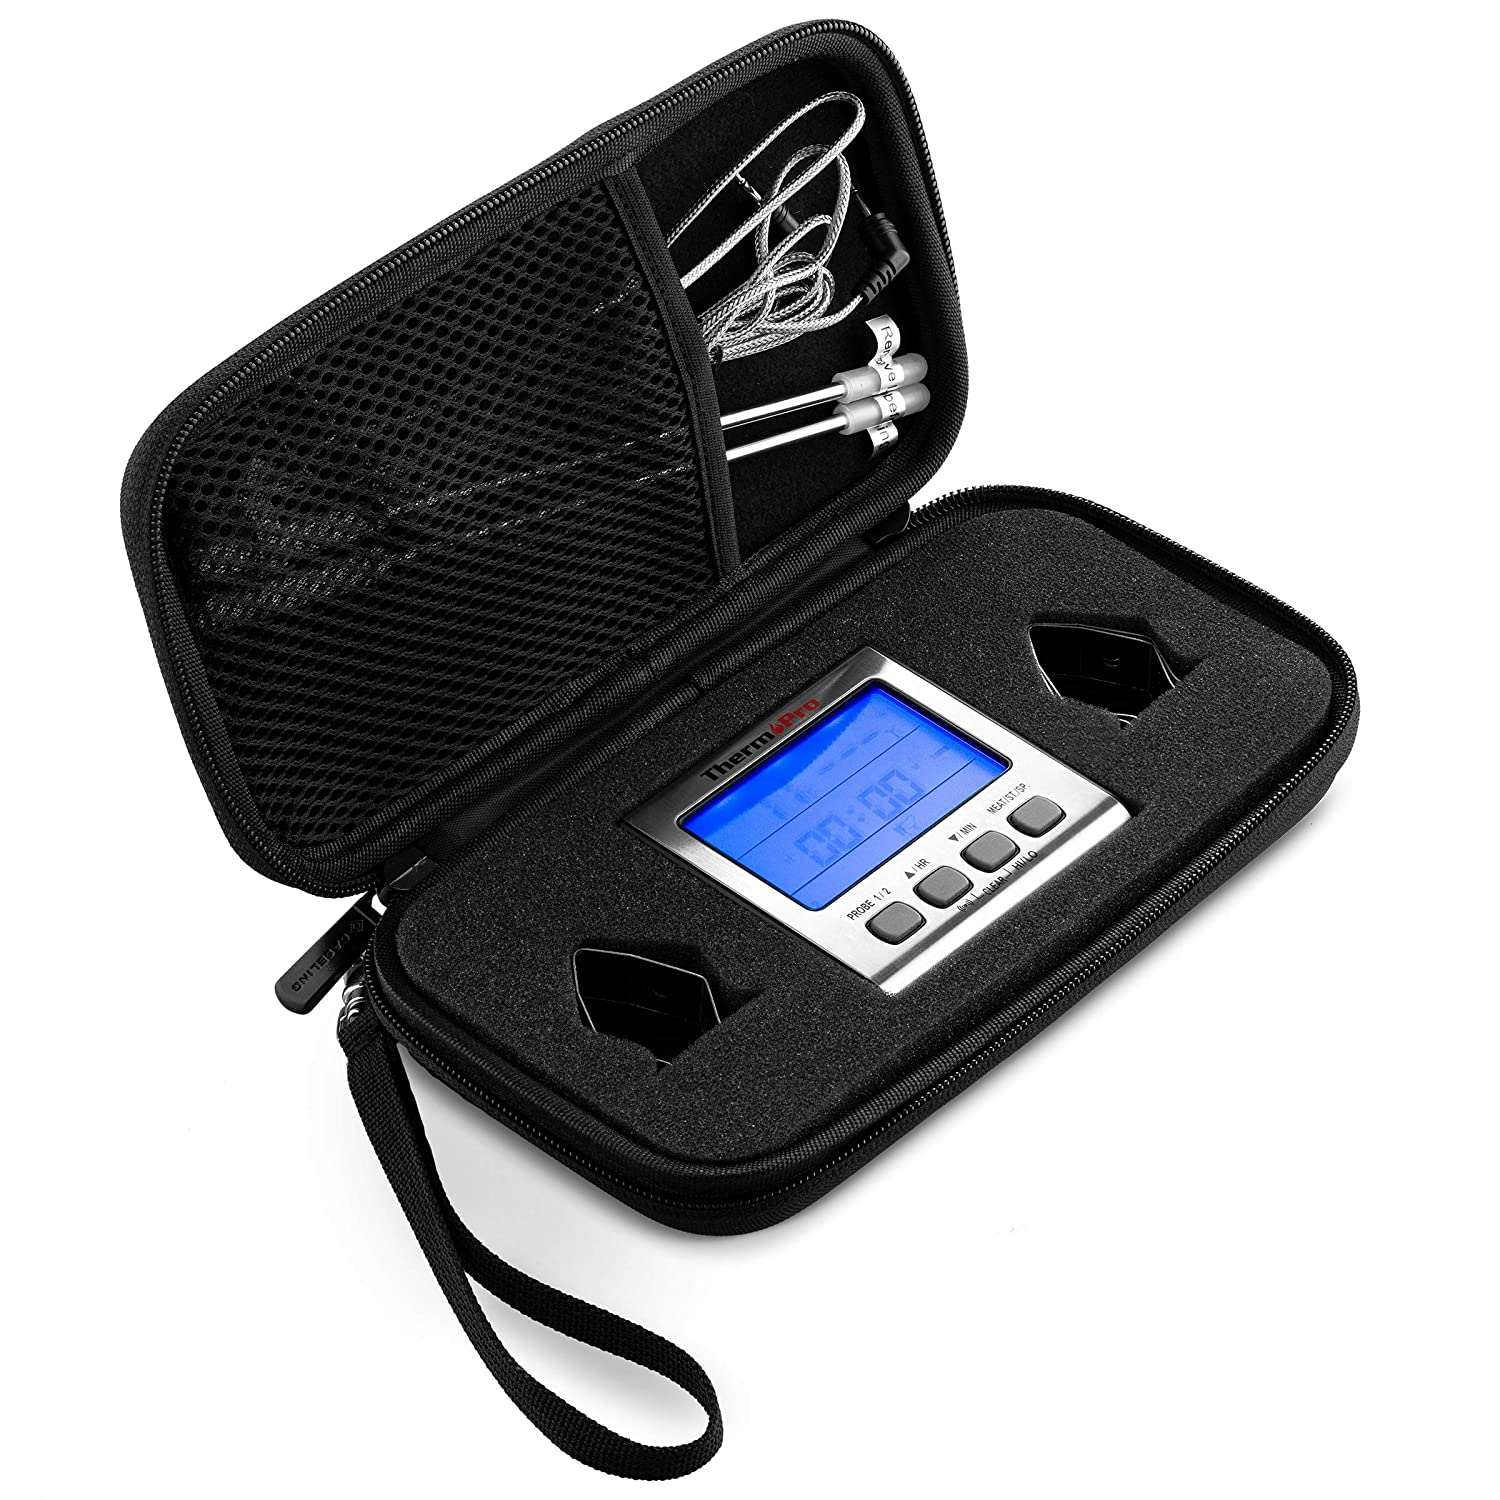 Caseling Hard Case Fits ThermoPro TP17 Dual Probe Digital Cooking Meat Thermometer Food Grill Thermometer - Hard Travel Carrying Zipper Case - Small Storage Clamshell Case Organizer